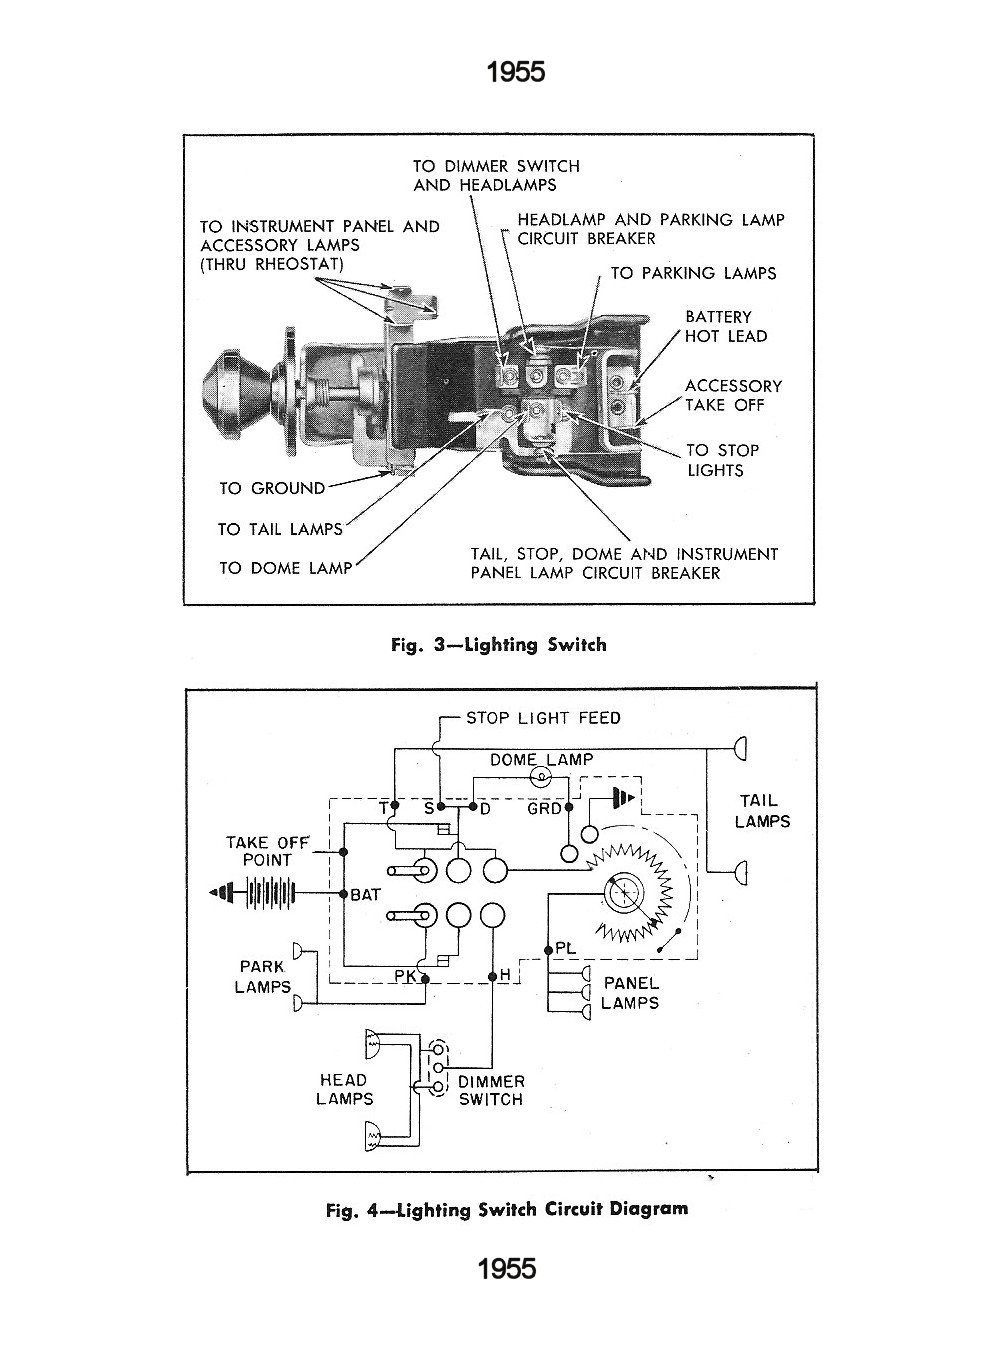 55csm1204a chevy wiring diagrams 66 Chevy Headlight Switch Wiring Diagram at aneh.co